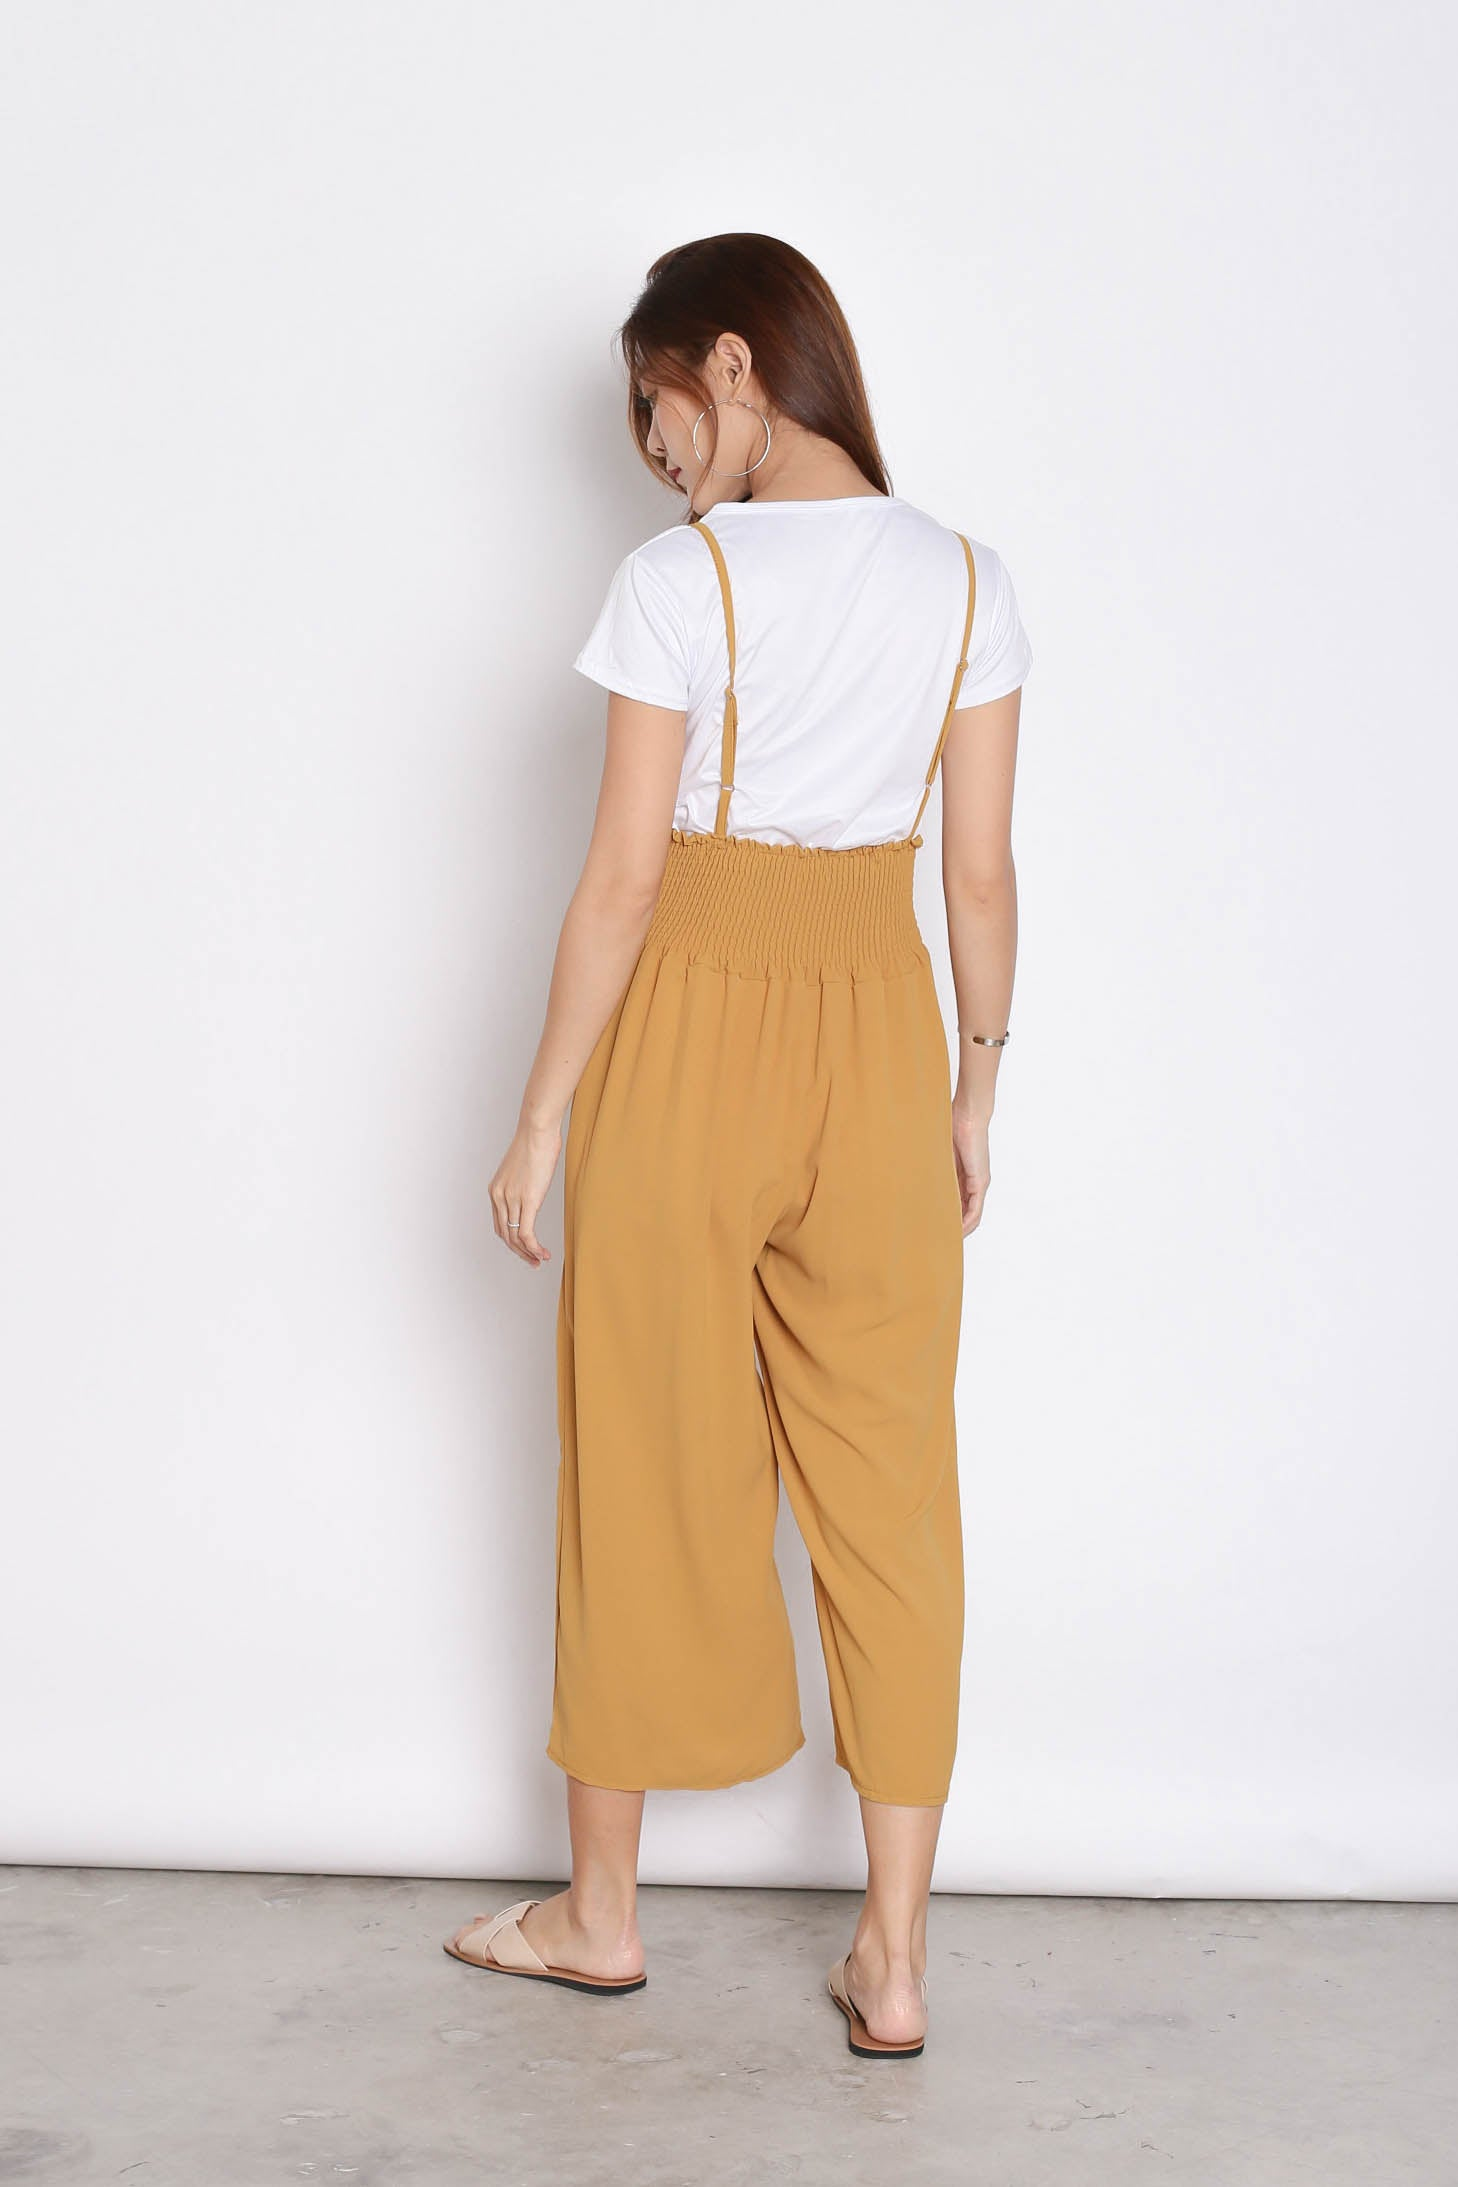 MERLY DUNGAREE JUMPERUIT SET IN MUSTARD